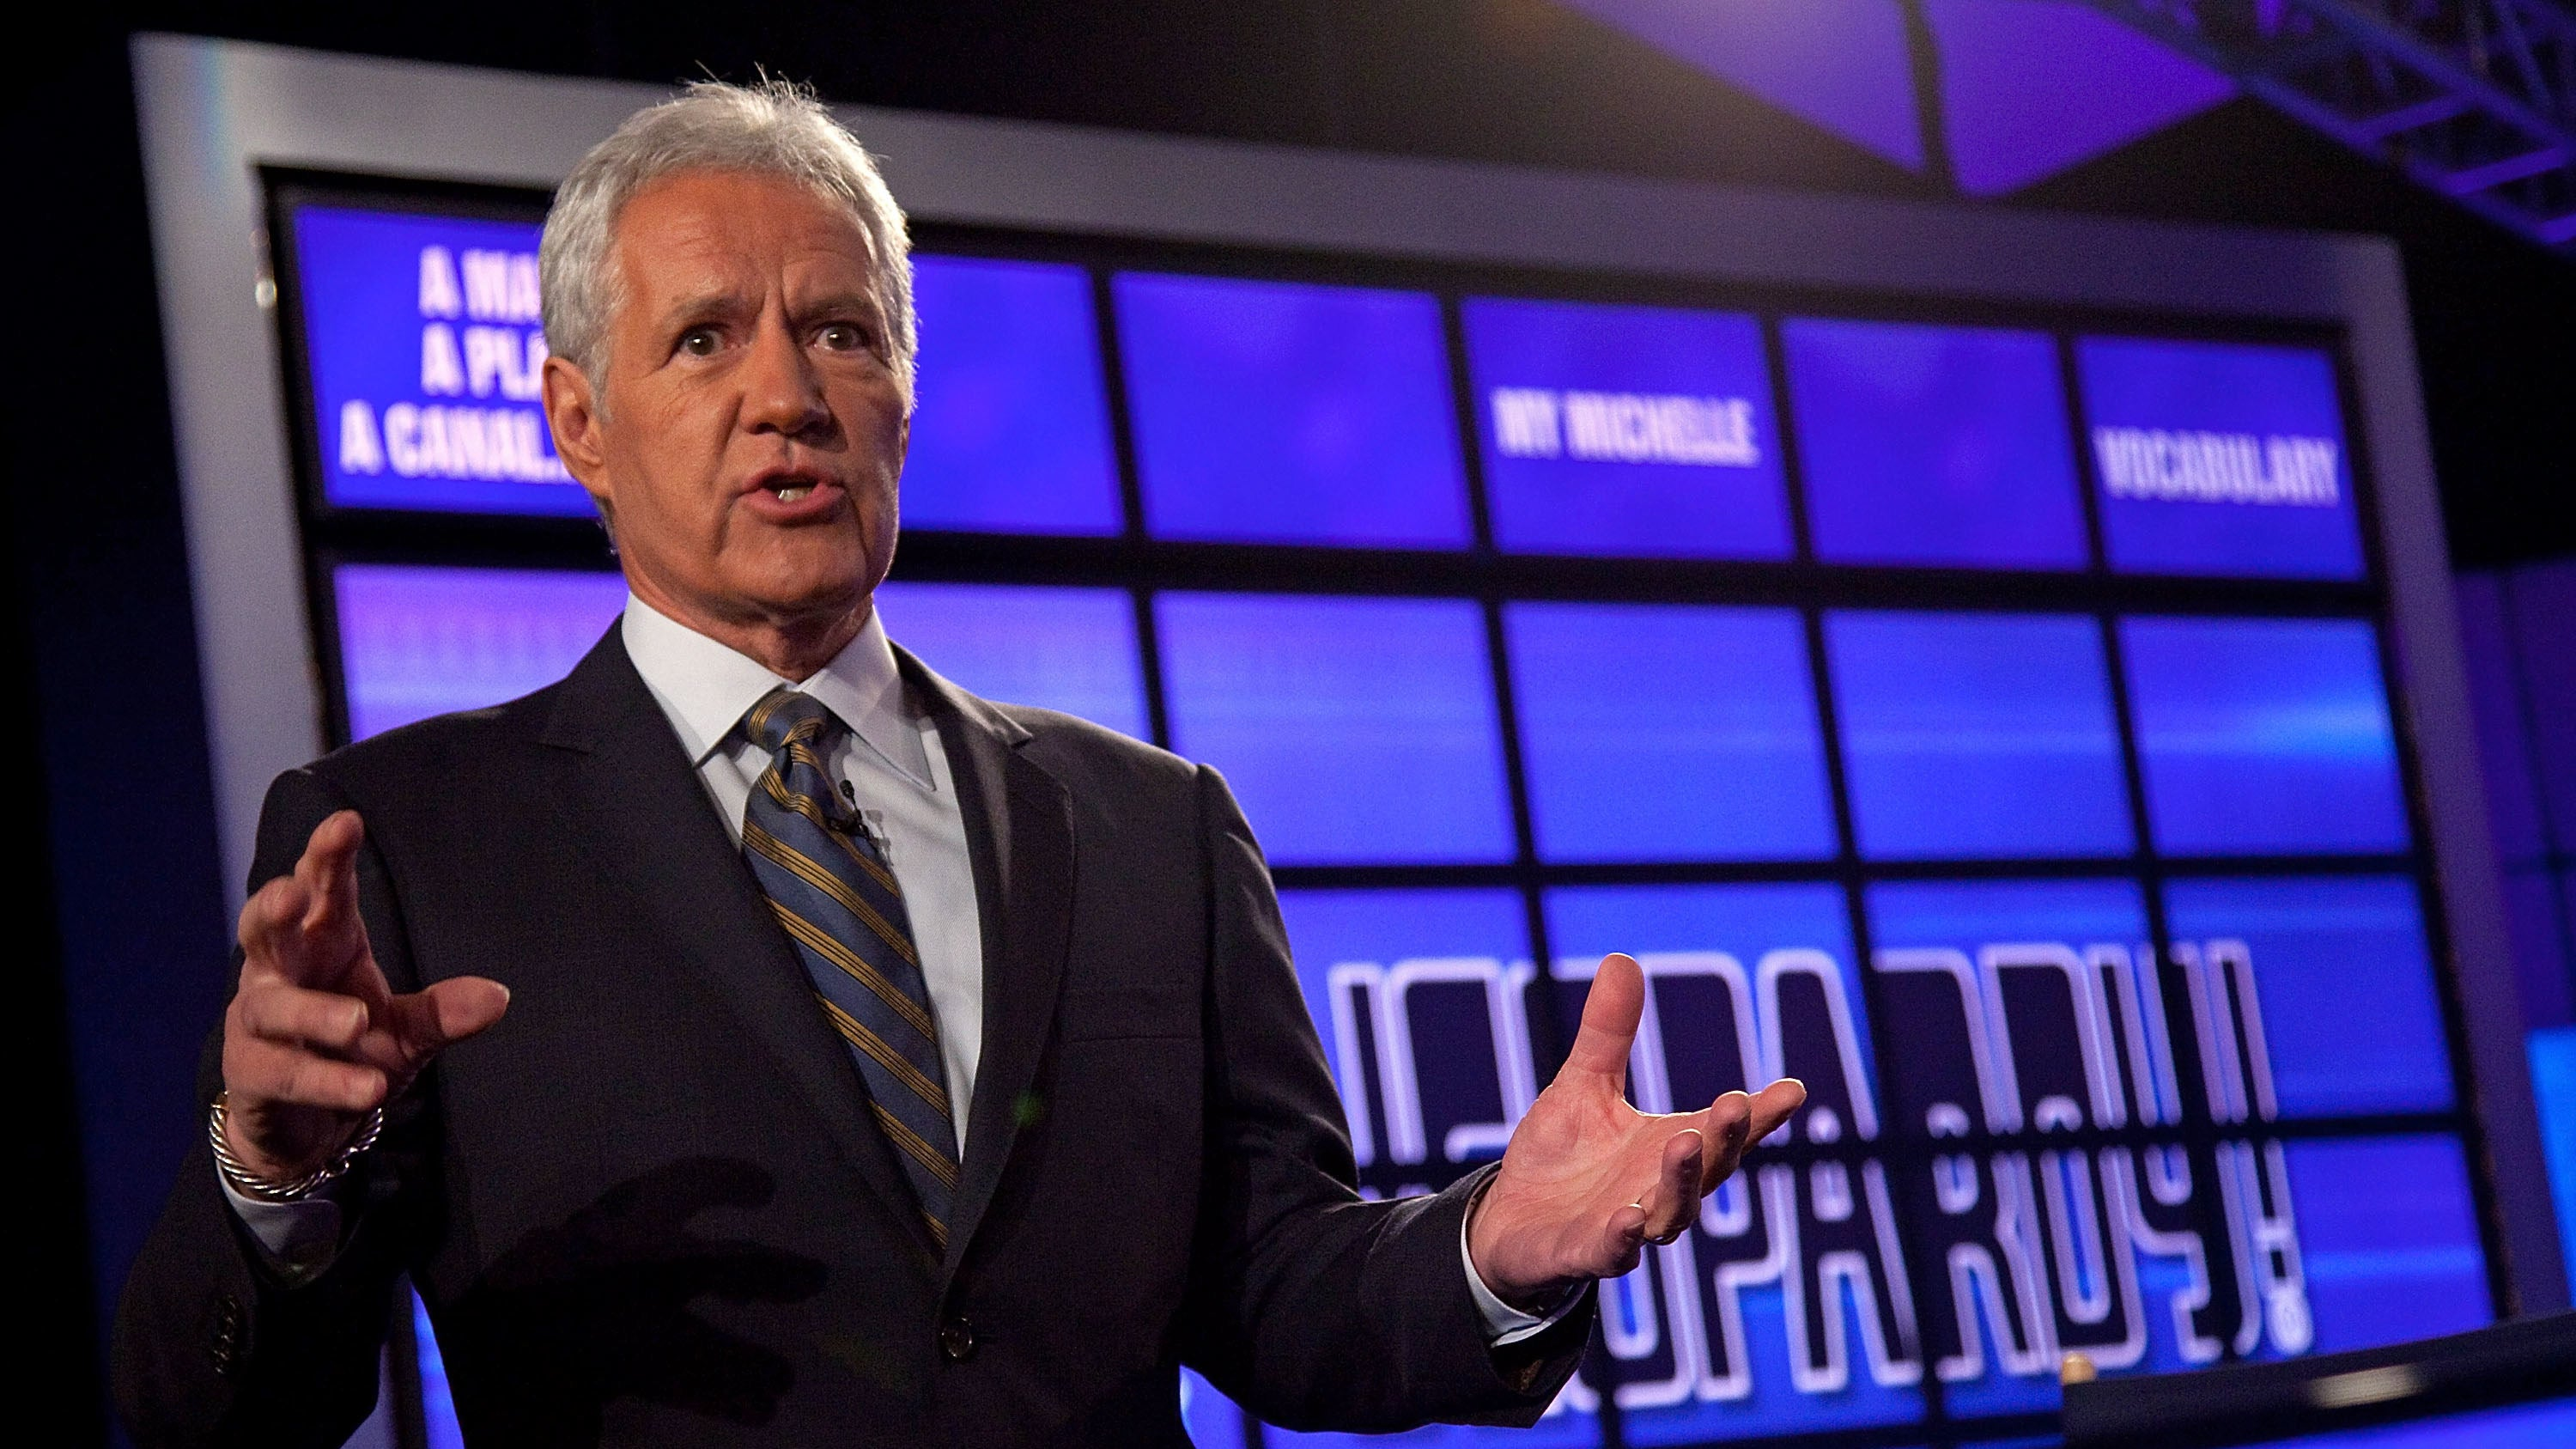 Test Your Trivia Knowledge Using This Database Of 'Jeopardy!' Questions